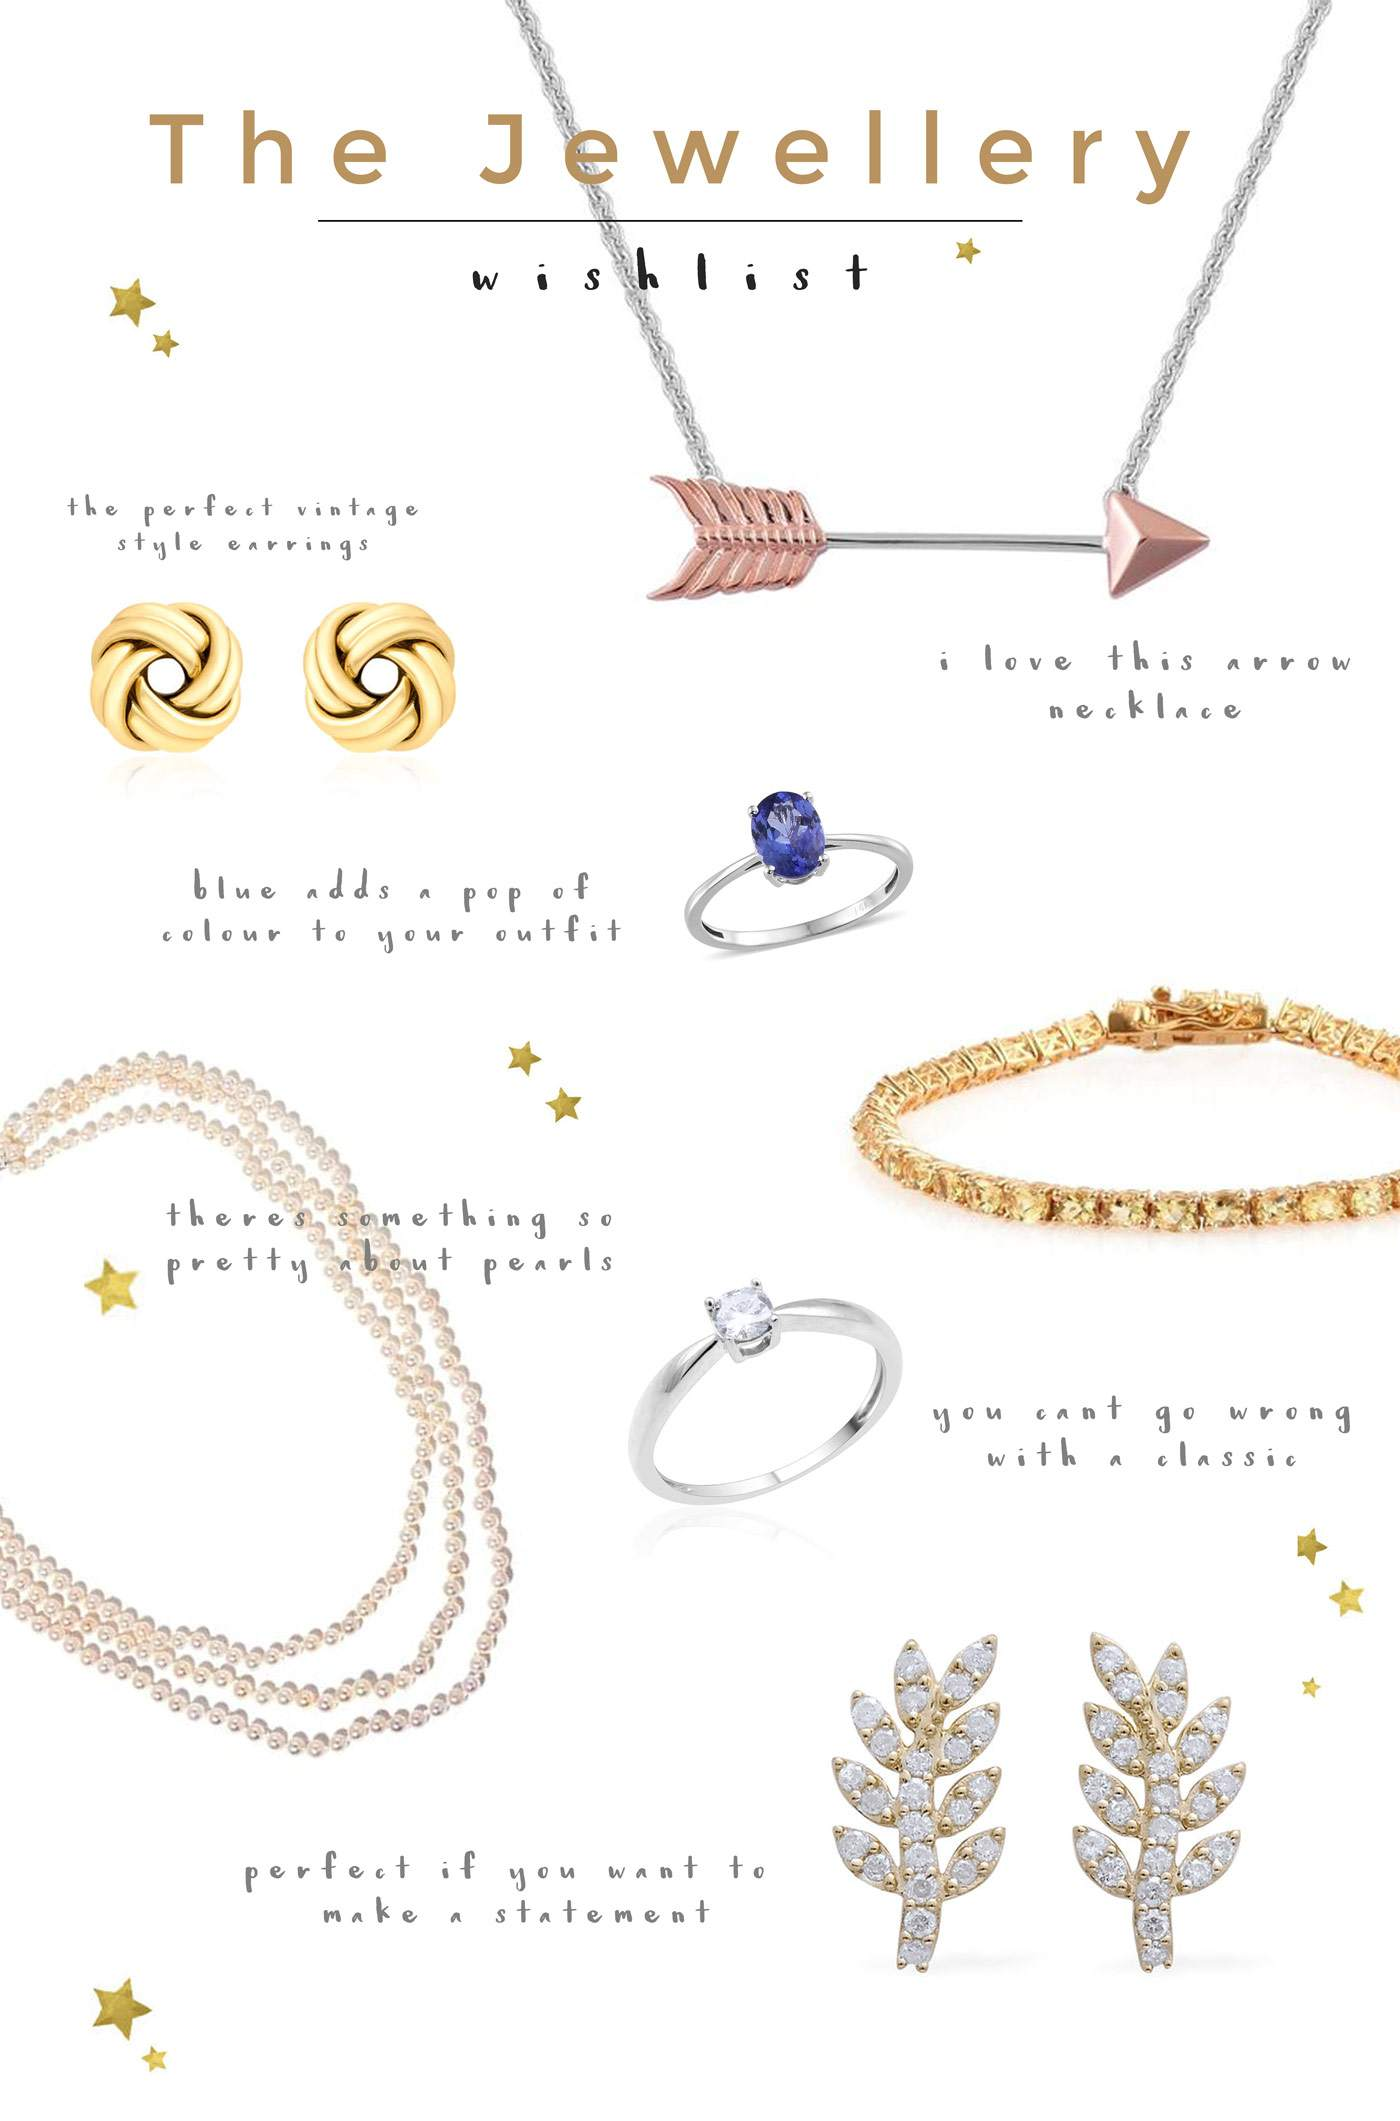 jewellery-wishlist-tjc-post